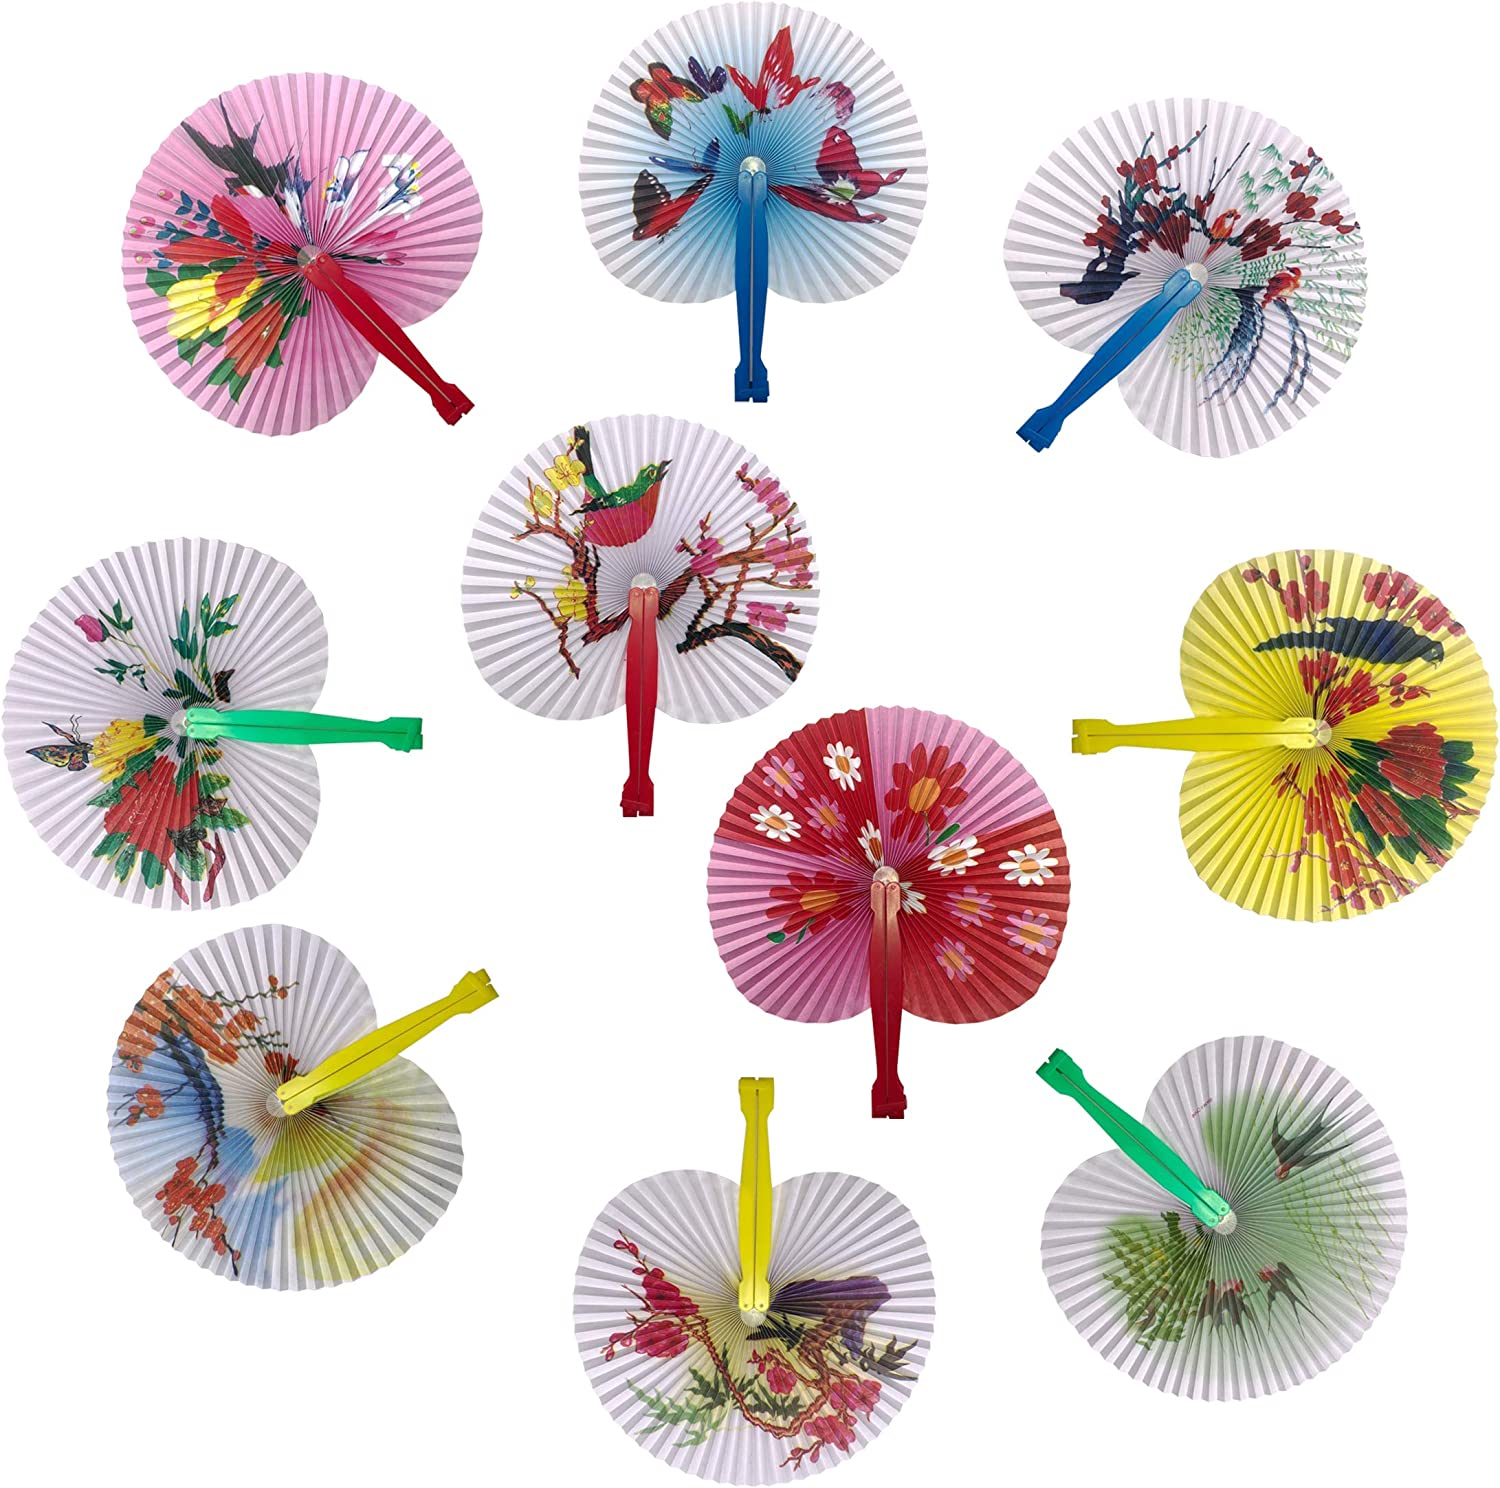 "Bestage 20 Pack 10"" Chinese Oriental Handheld Floral Folding Paper Fans Assortment for Wedding Birthday Party Favors Kids Toys Gifts(Colorful Handle)"